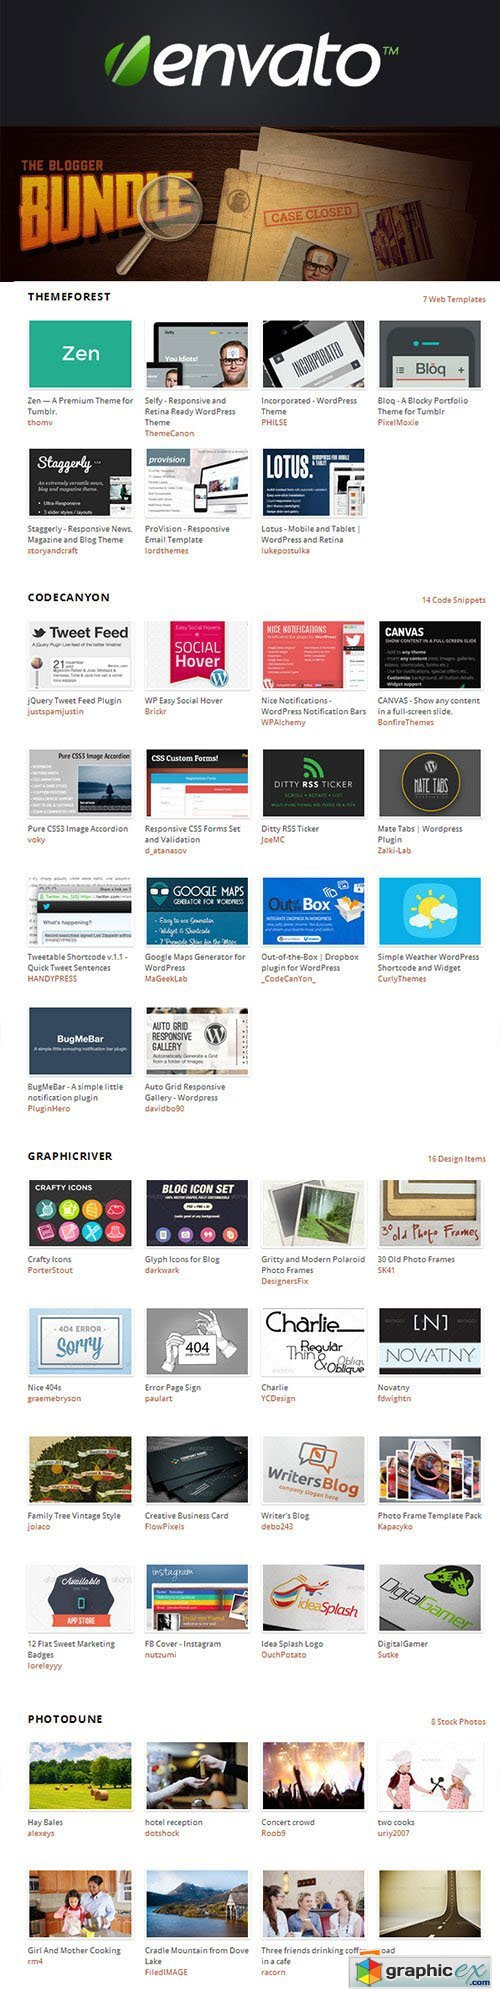 Envato - The Blogger Bundle